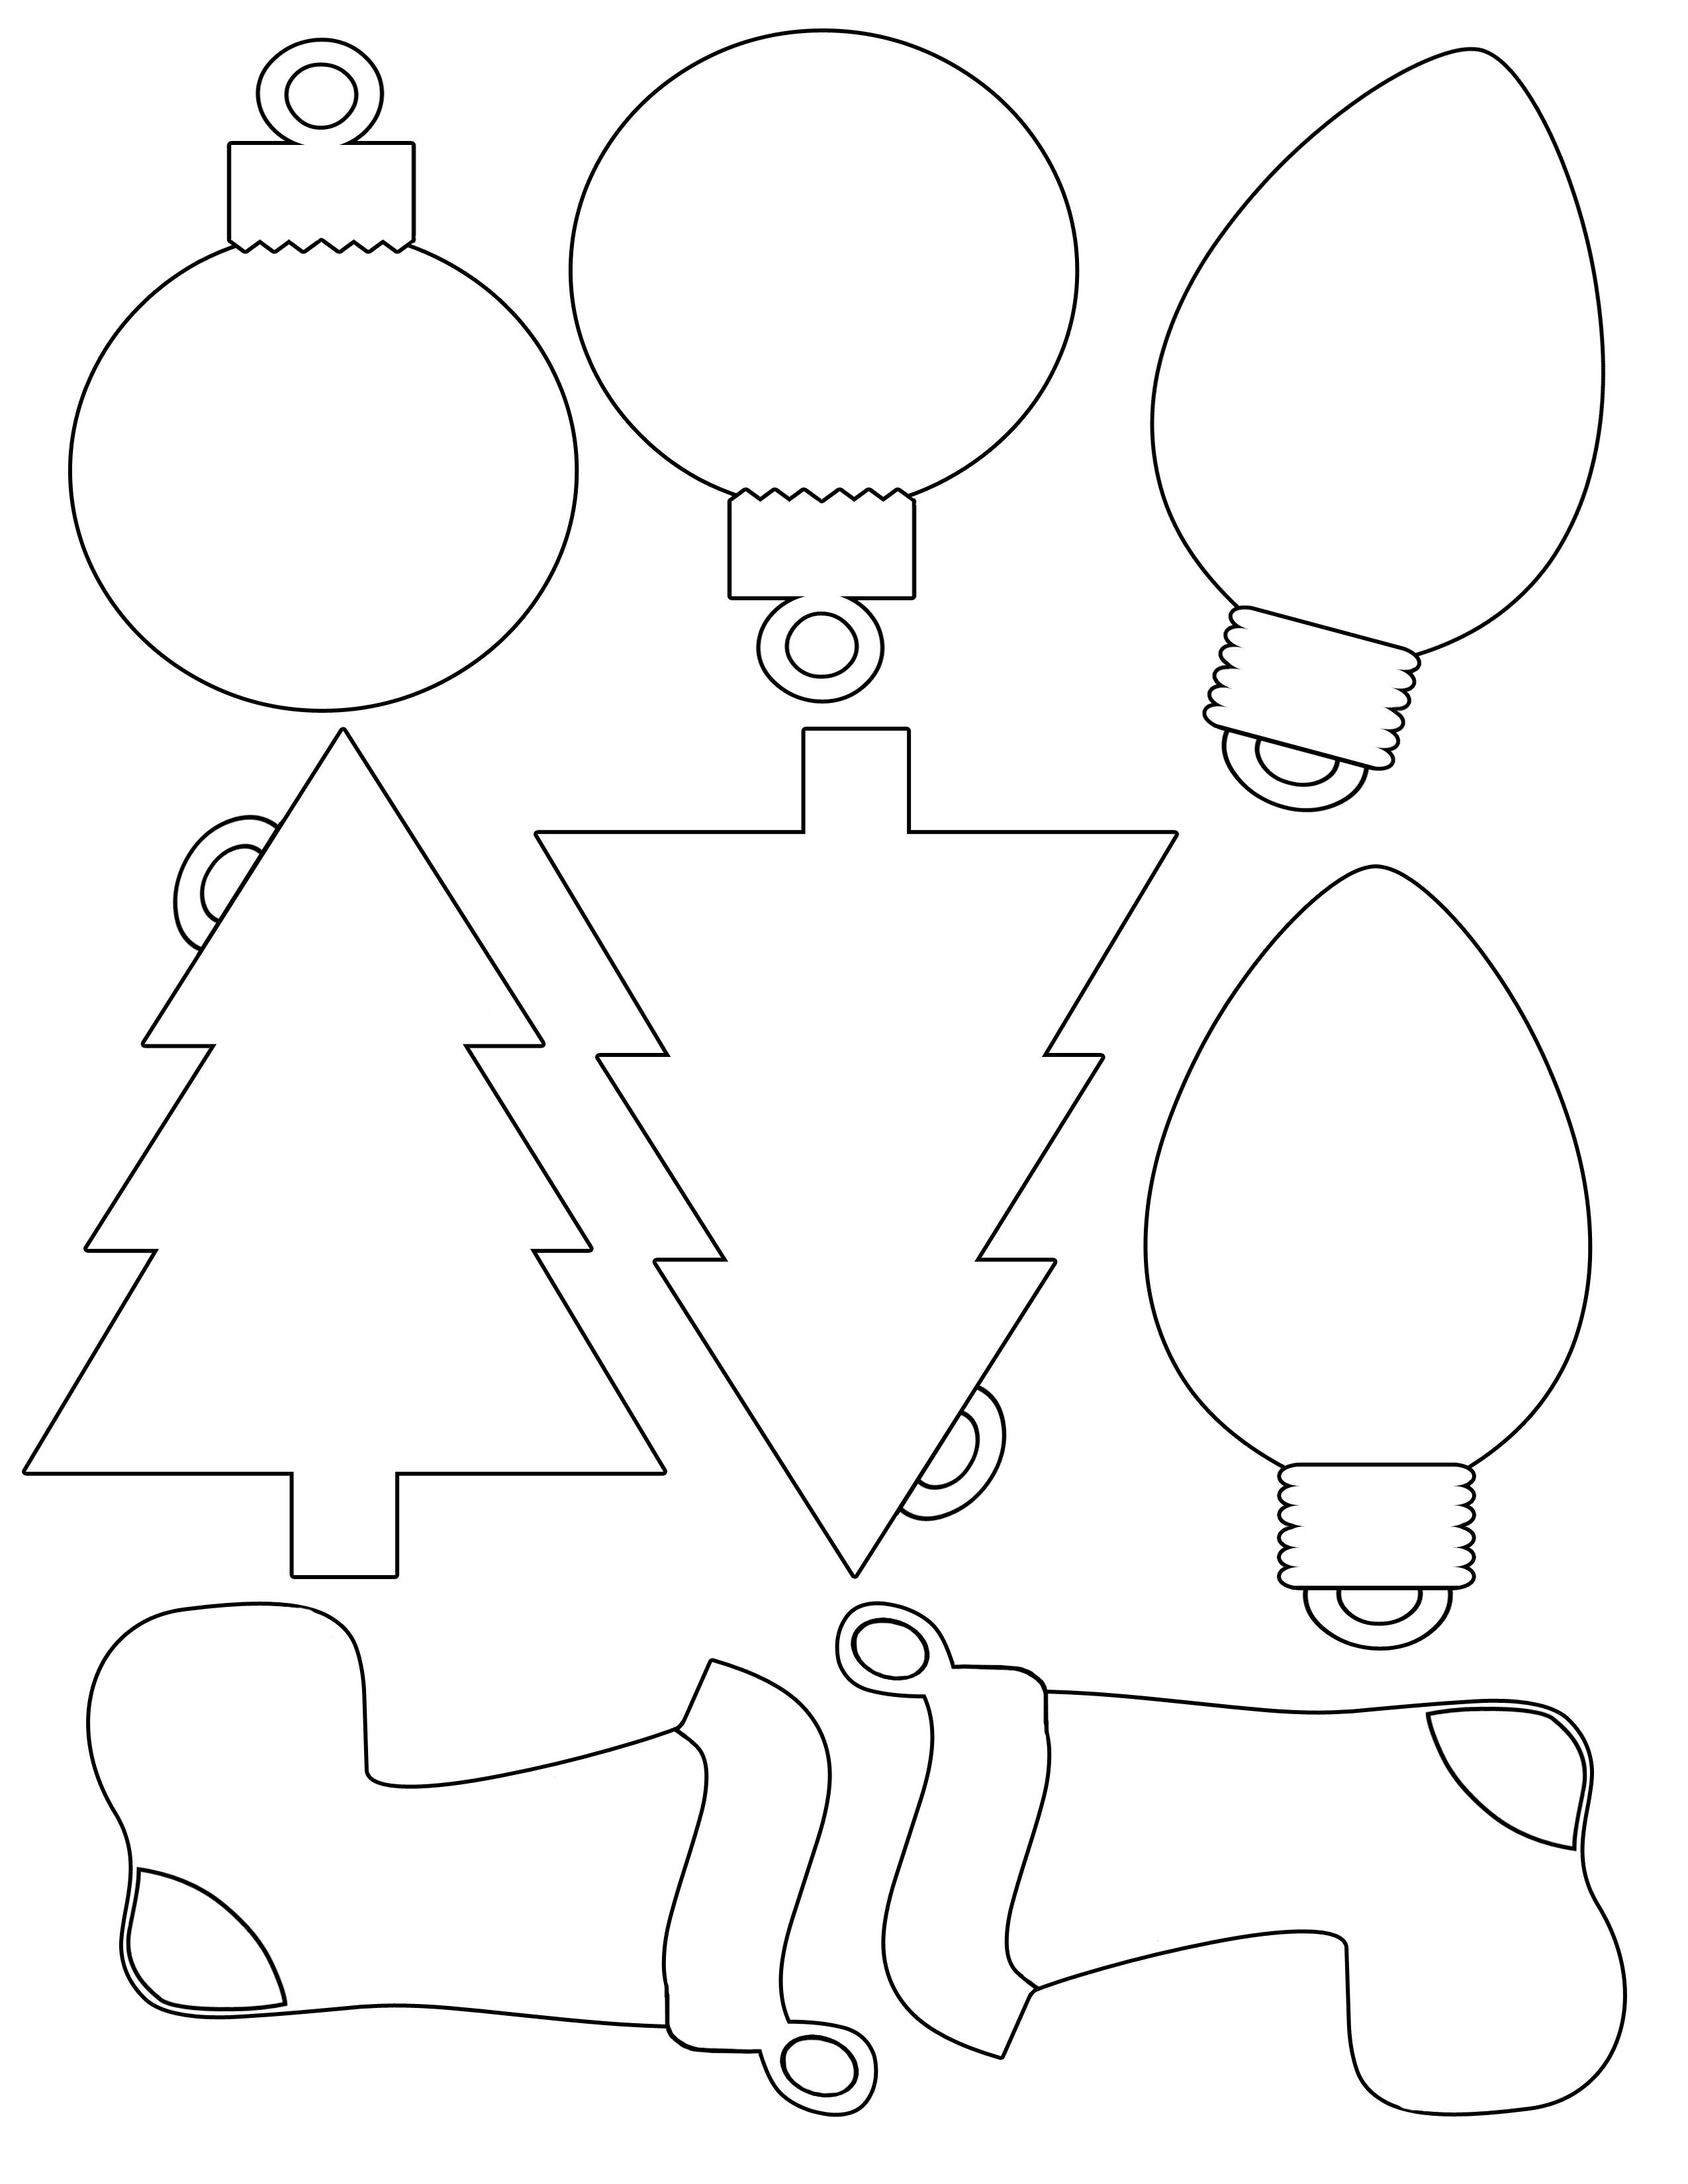 Free Pin Gift Tag Templates! Click On Image And Save To Your Folder - Free Shape Templates Printable